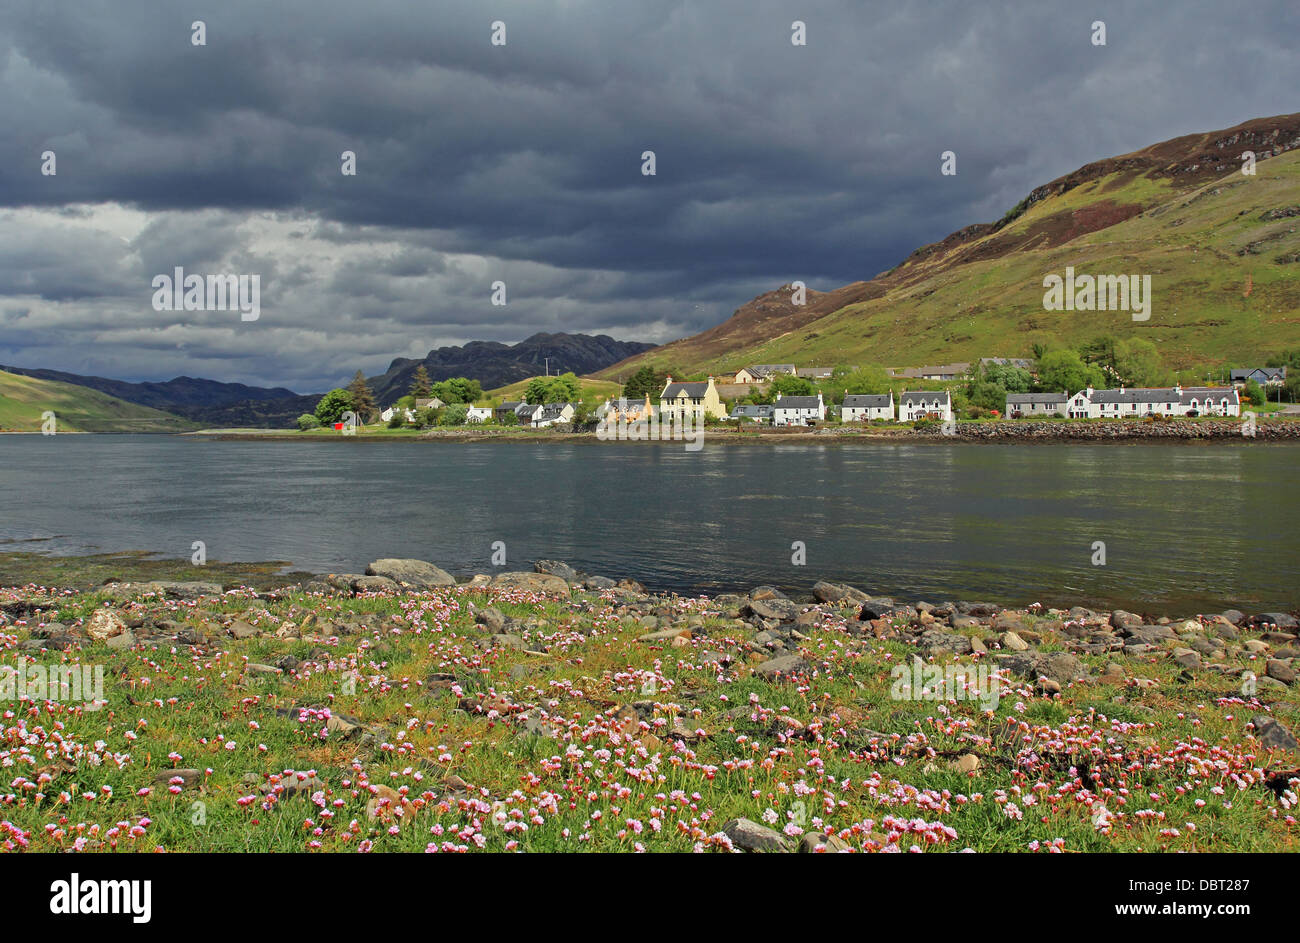 UK Scotland Highland Inverness-shire Dornie Village Loch Long - Stock Image